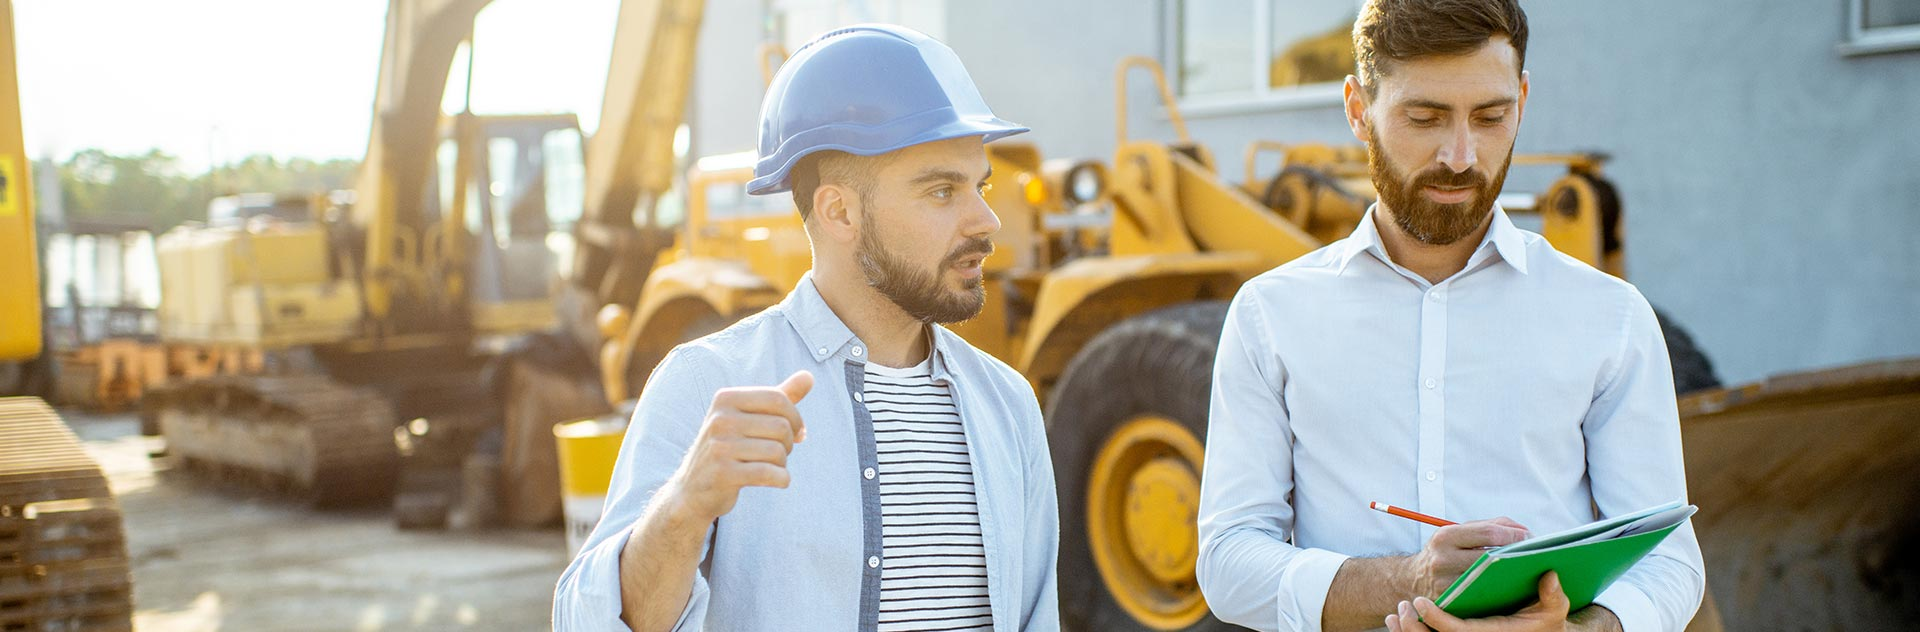 contractor and appraiser